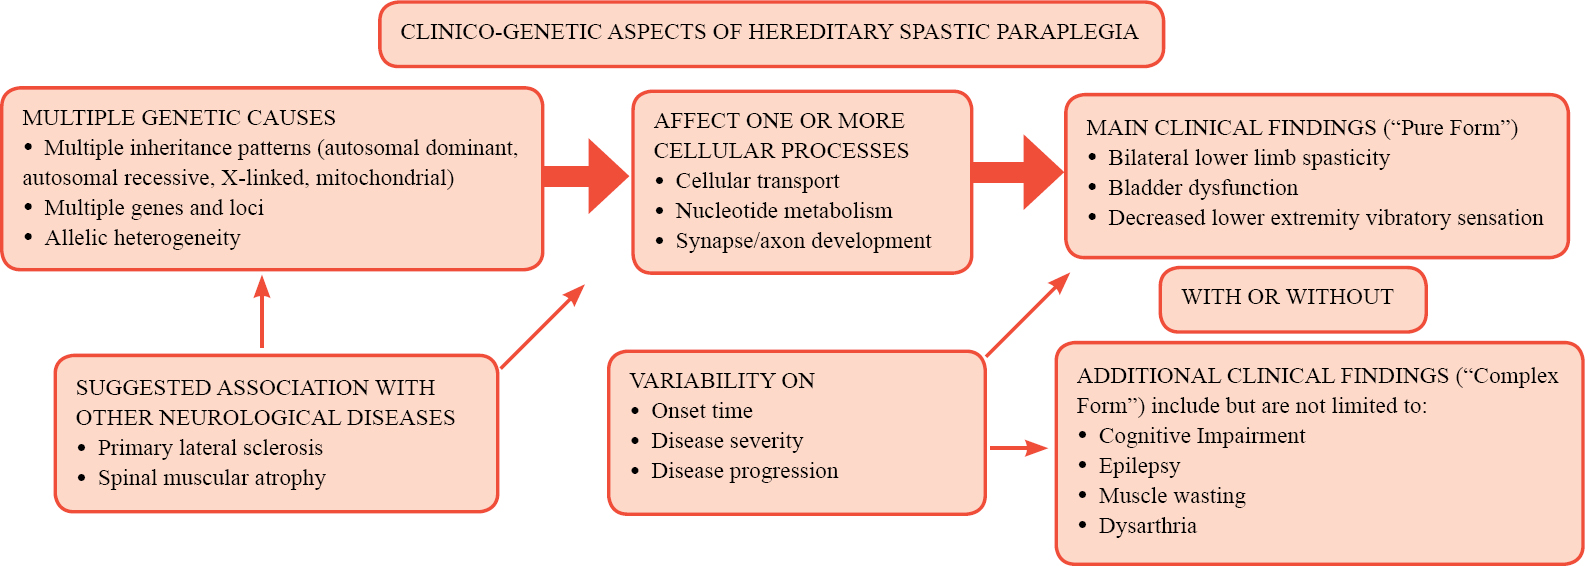 Figure 1: A schematic providing a simplified overview of the clinico-genetic aspects of hereditary spastic paraplegia.